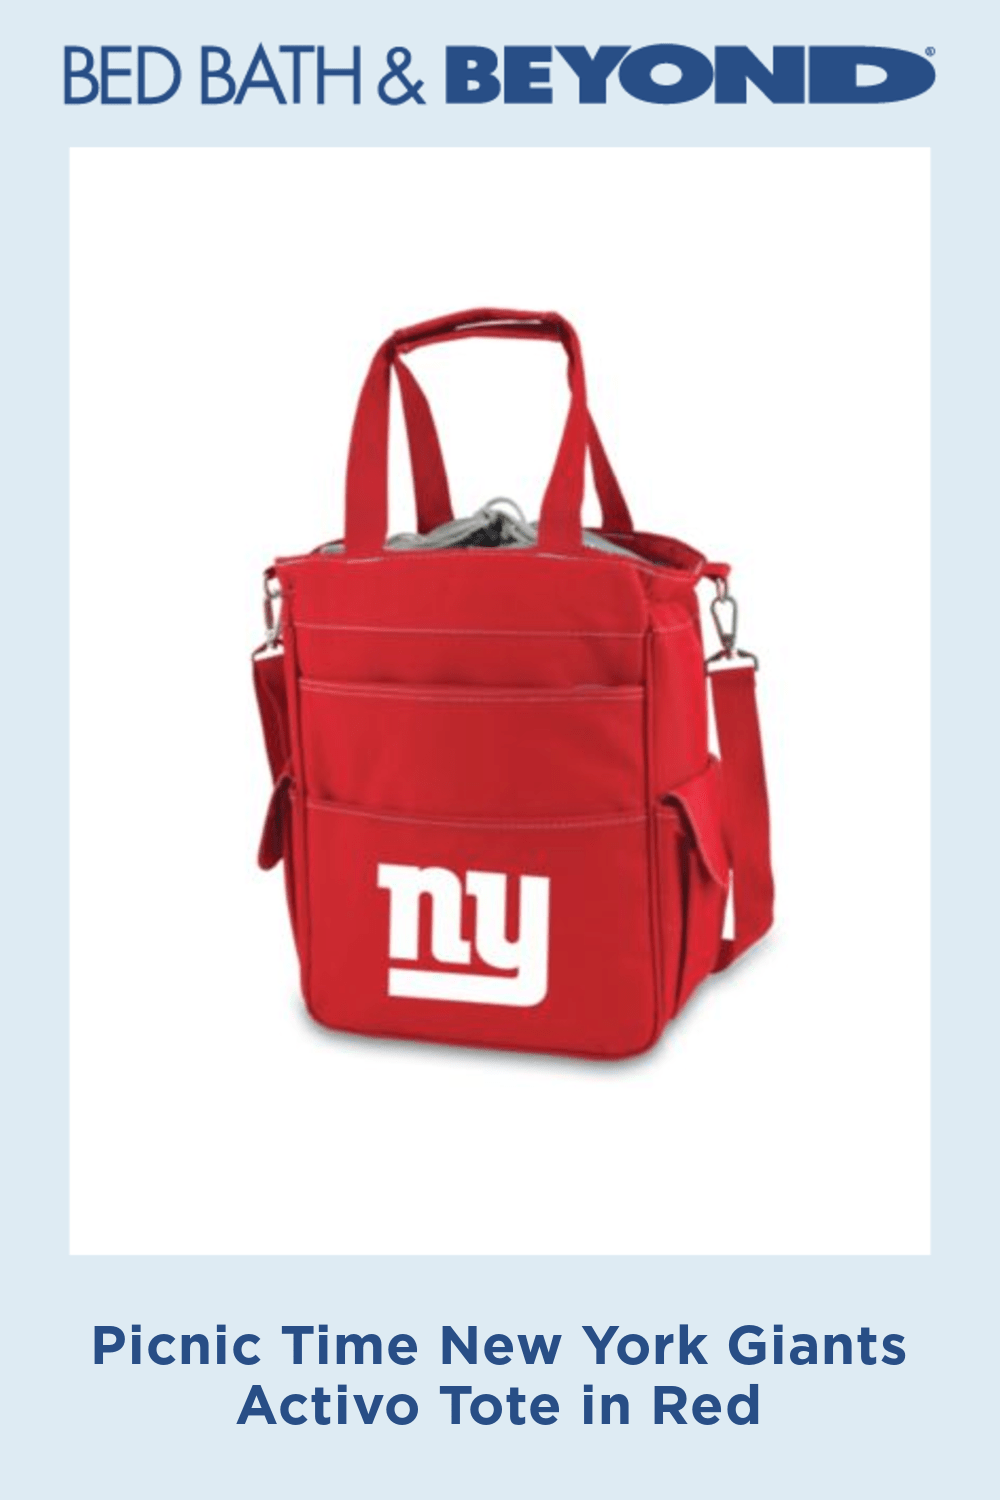 Picnic Time New York Giants Activo Tote in Red